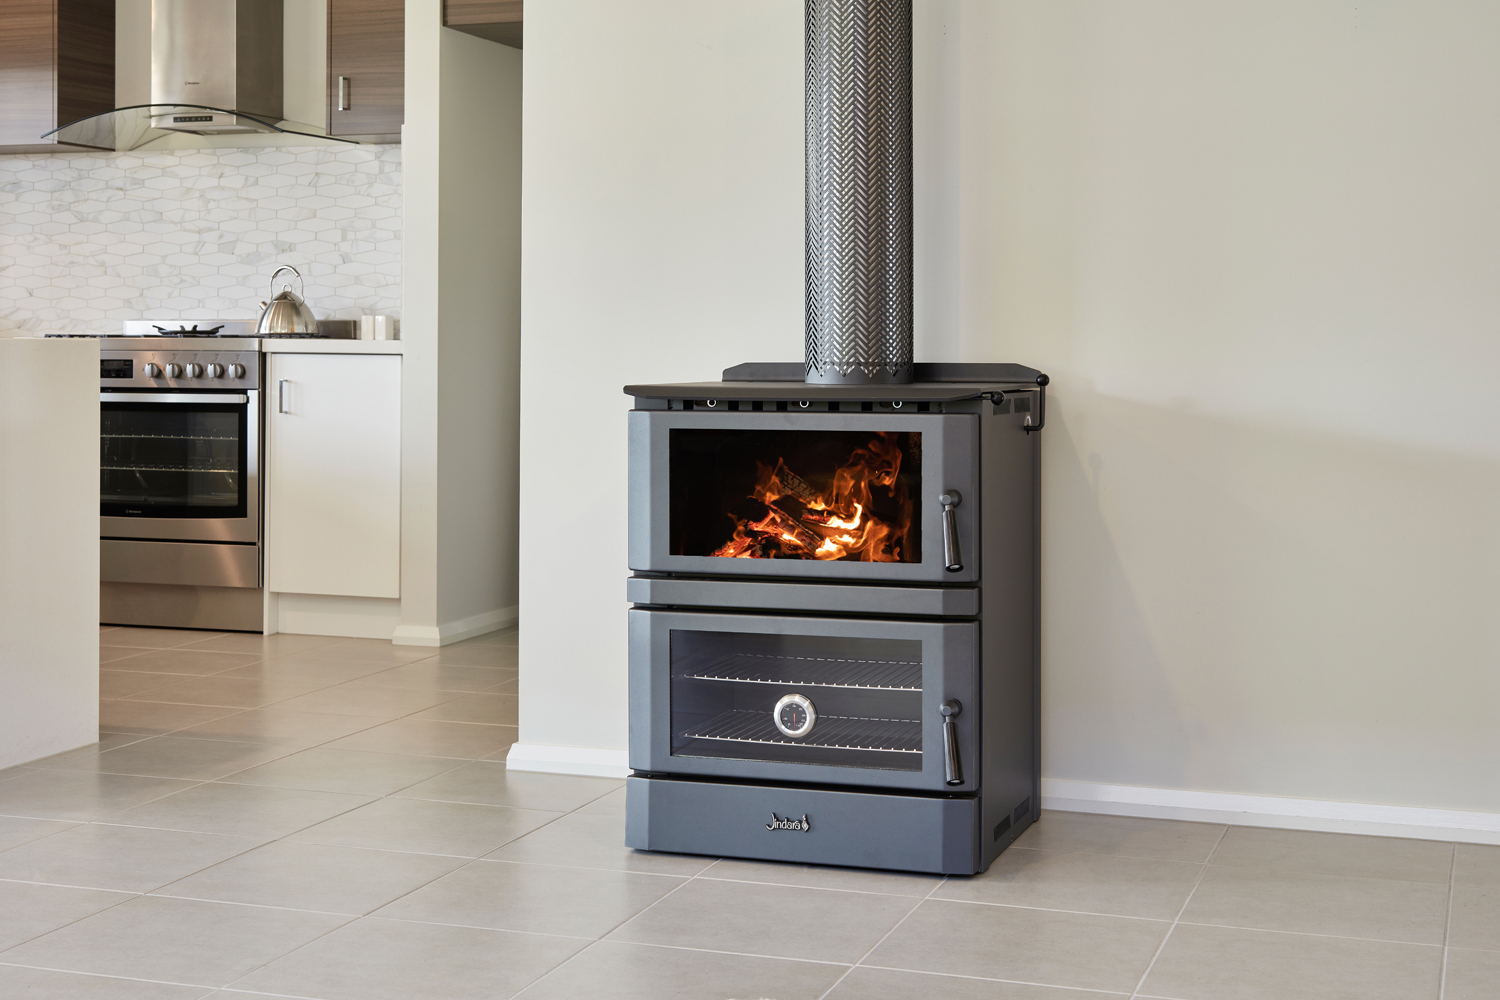 Jindara and Eureka brands release 3 new energy-efficient woodheaters for 2020